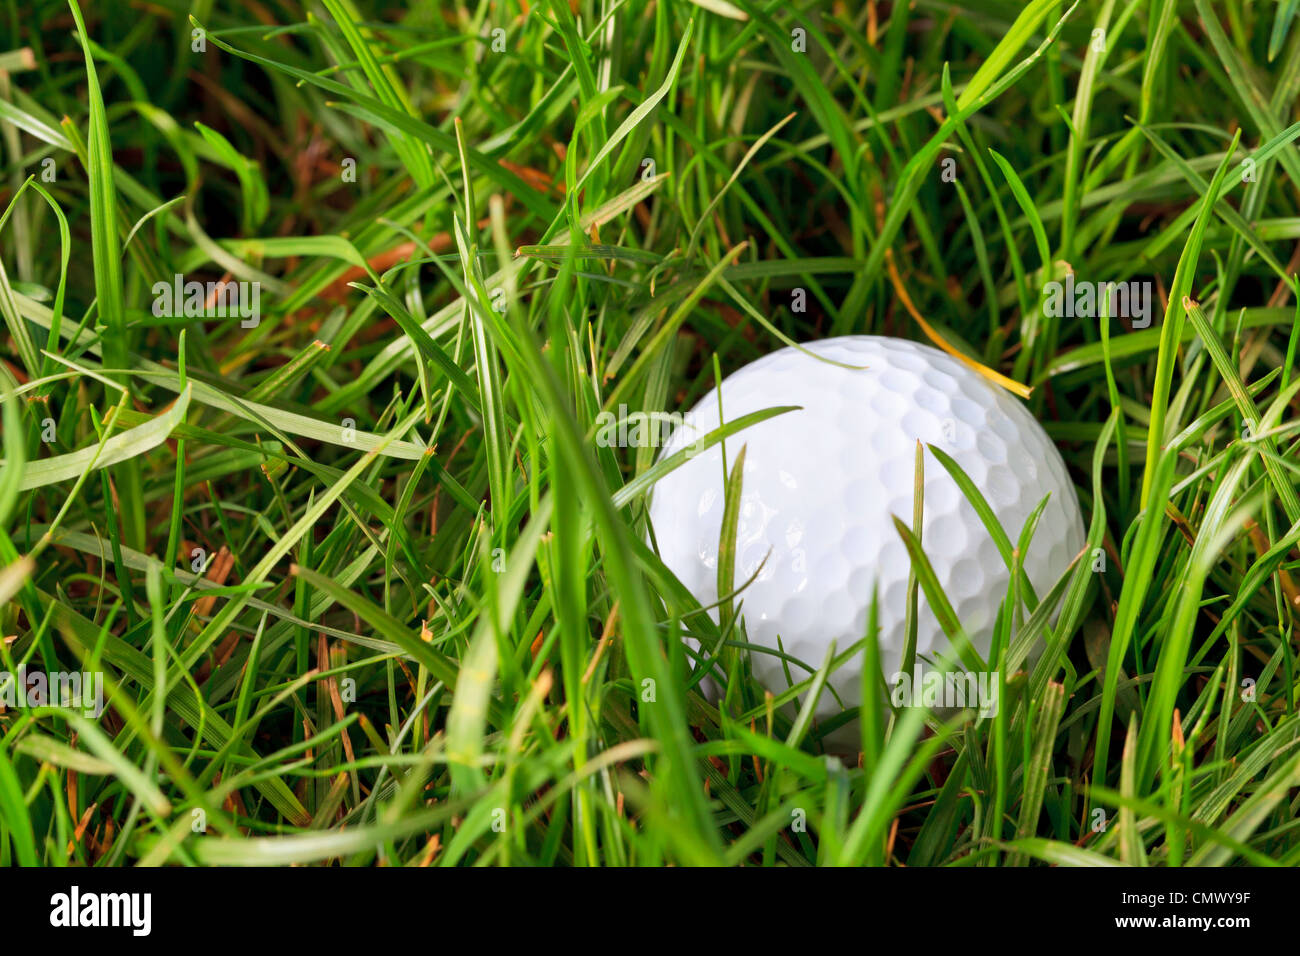 Photo d'une balle de golf se trouvant dans l'herbe rugueuse Photo Stock